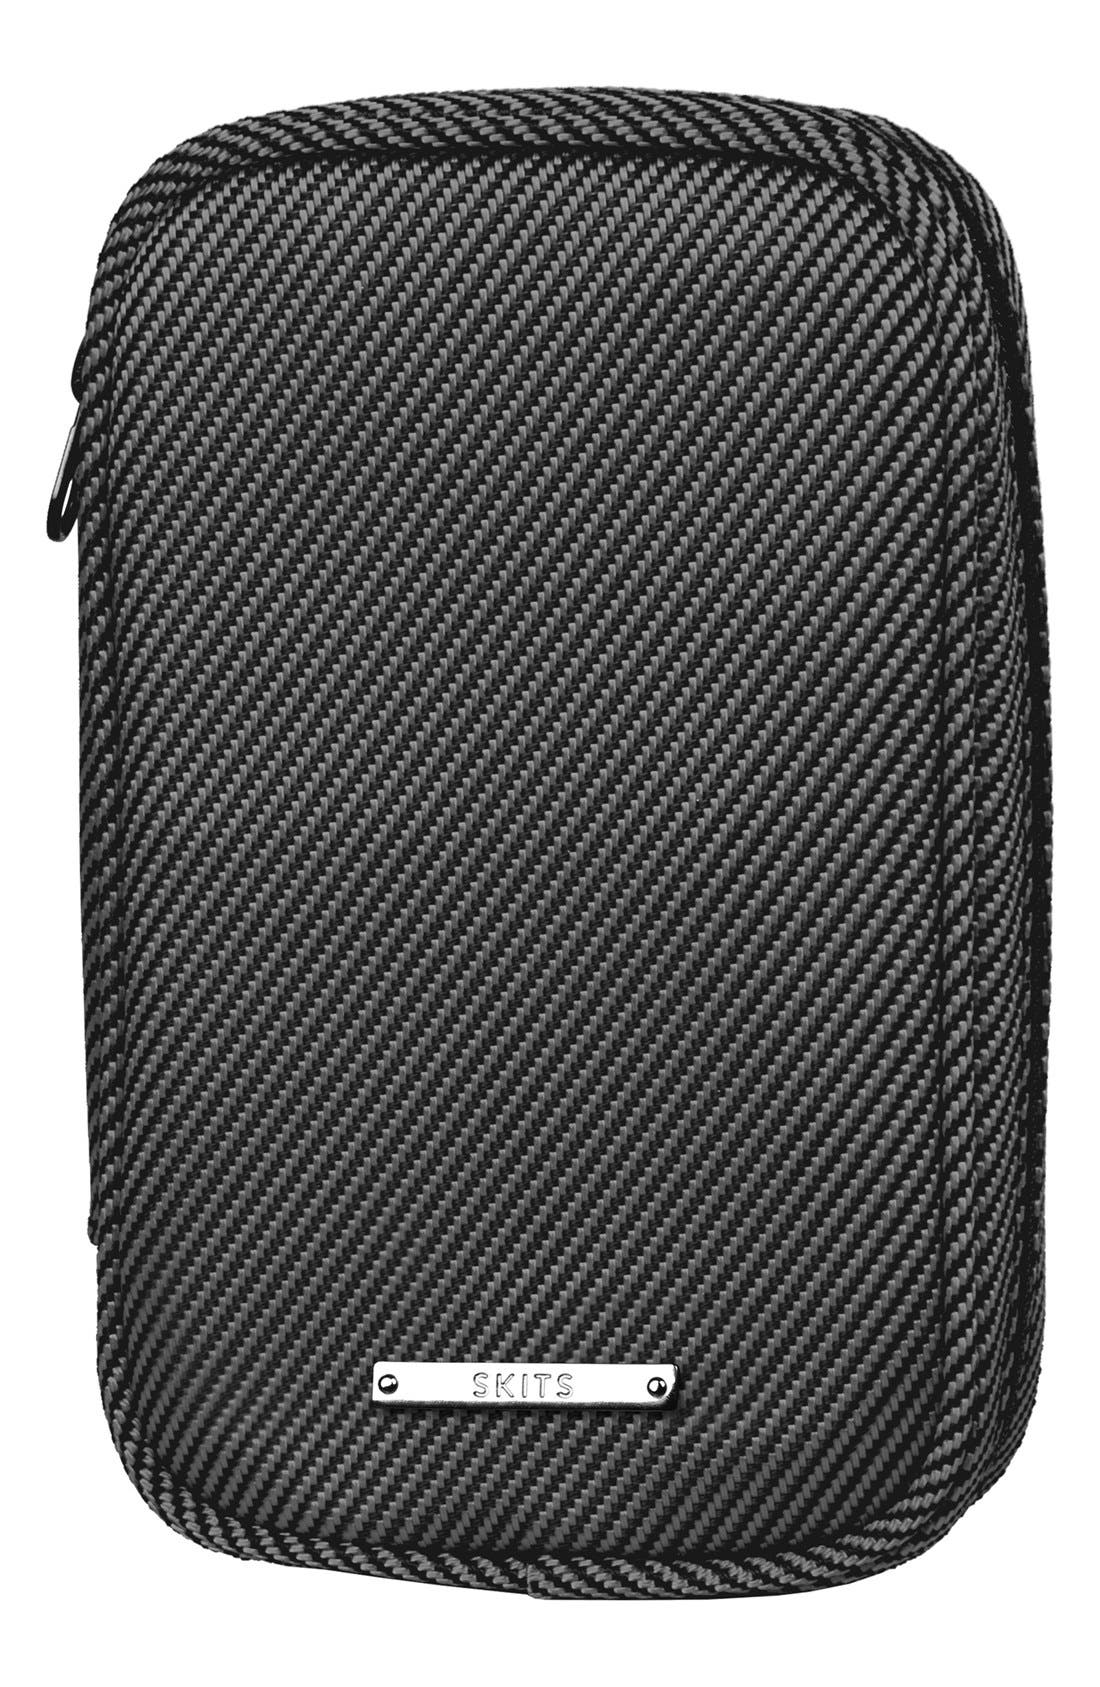 SKITS 'Clever - Carbon Stripe' Tech Case